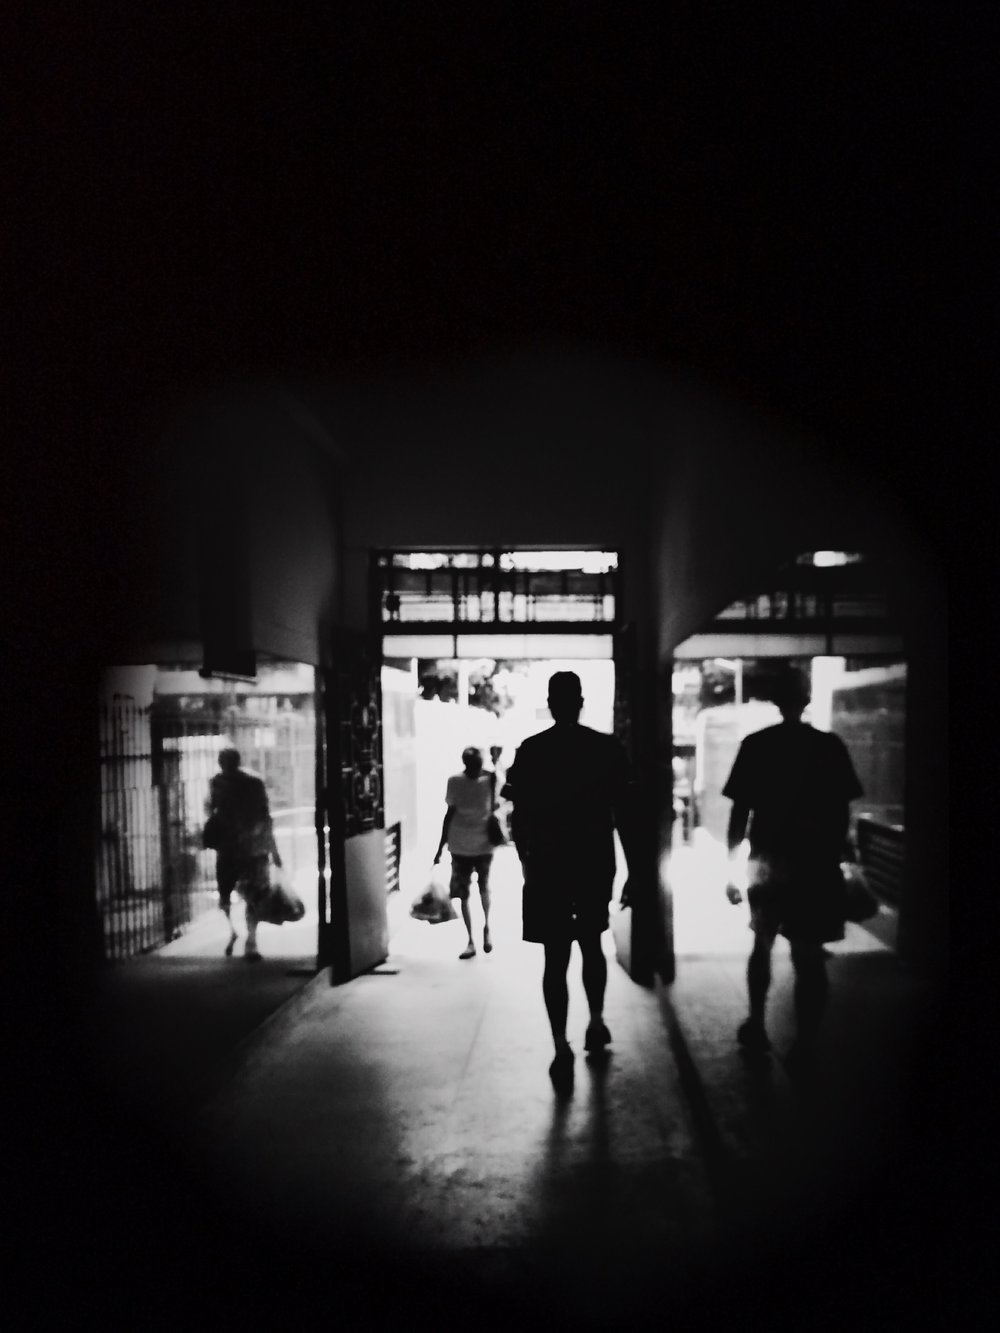 / Tunnel of crossing stories